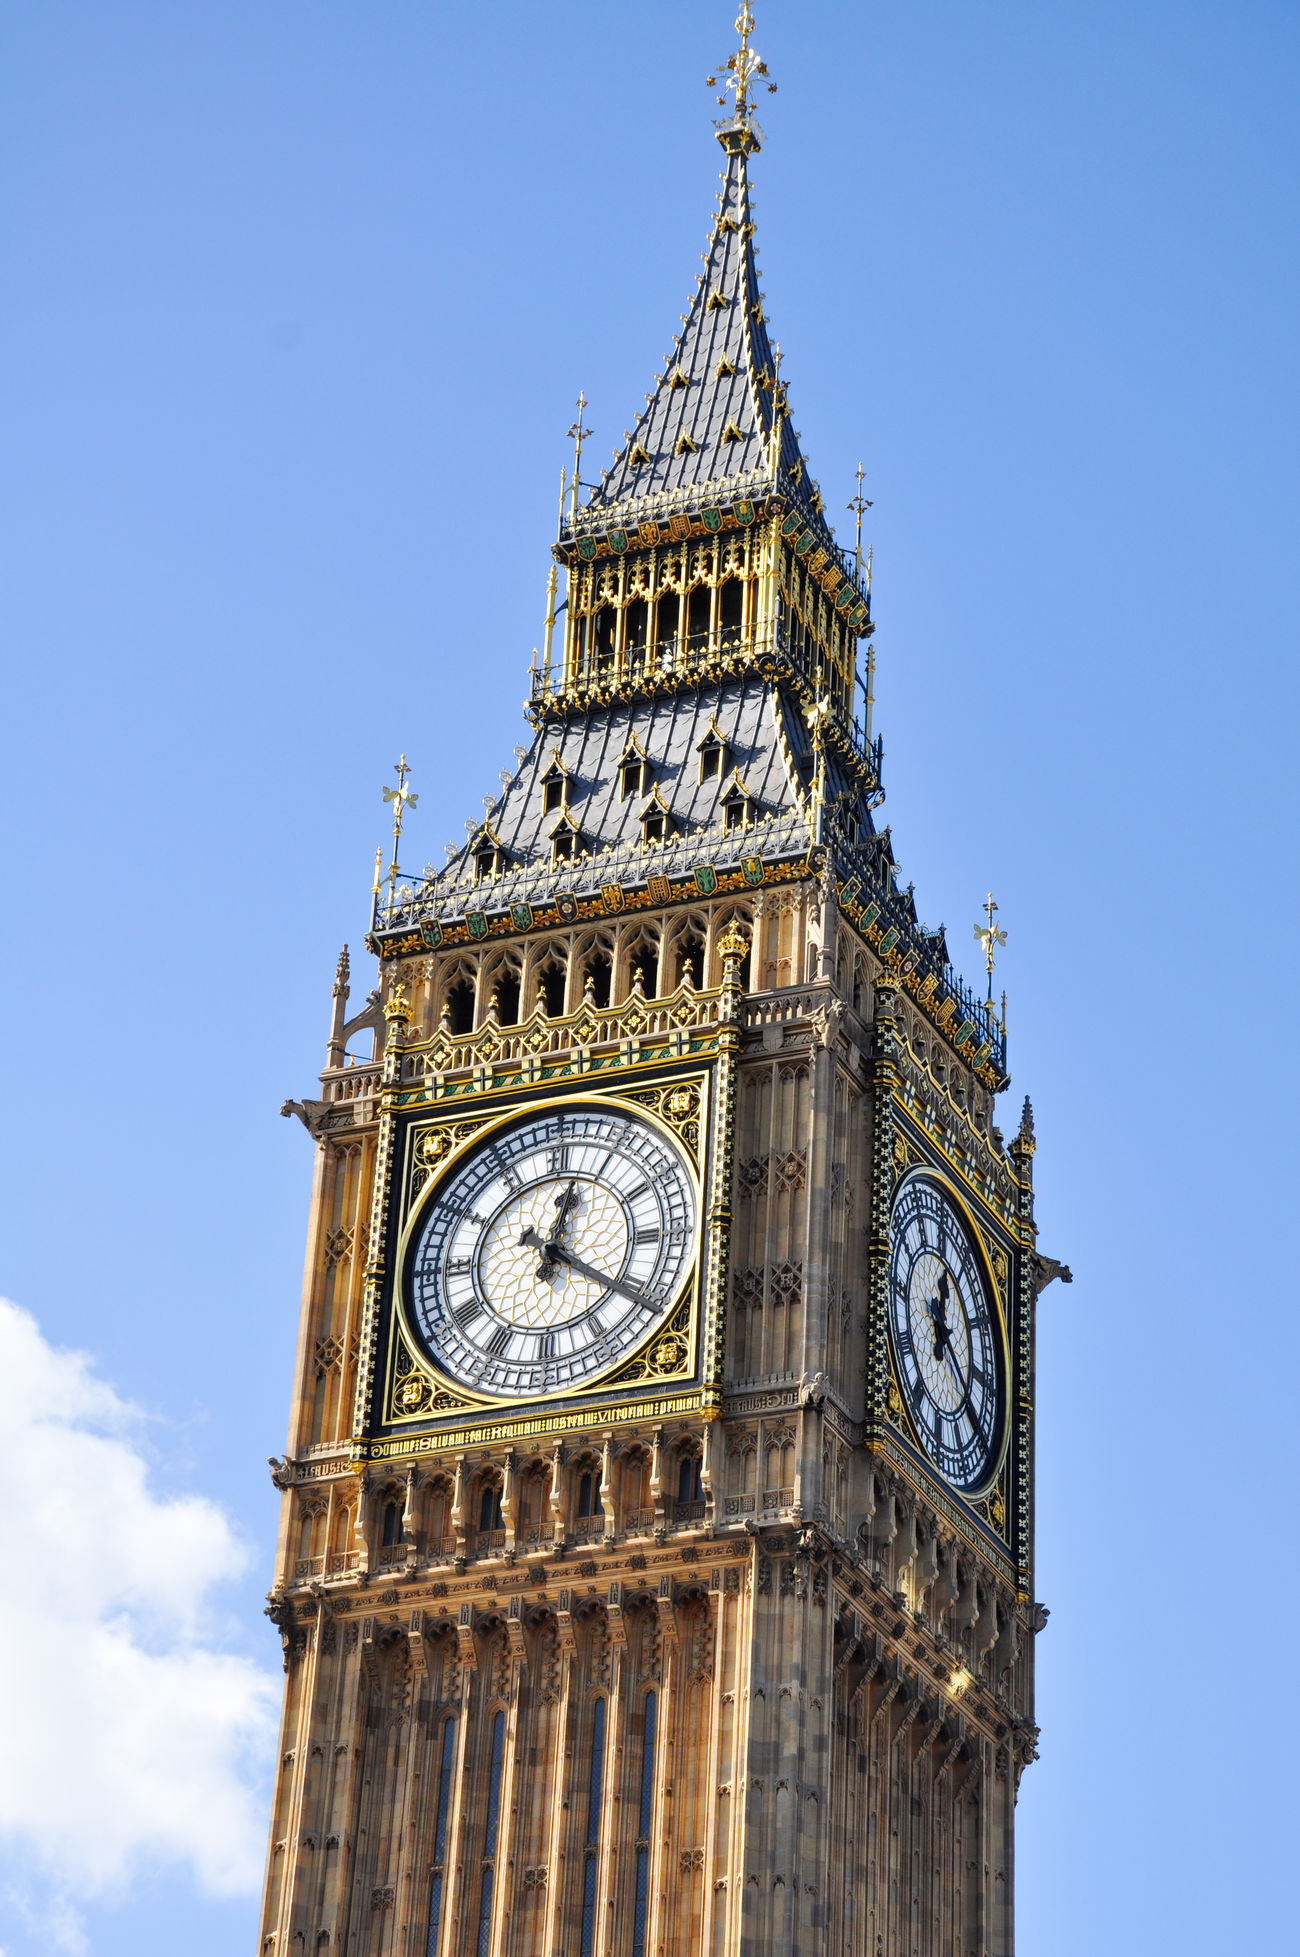 Clock Big Ben Buckingham Palace Clock Tower Clouds Day England England, UK England🇬🇧 Famous Place High Section Holiday KINGDOM London Palace Queen Sky Time Tourists Tower Travel Destinations On The Way Showcase July